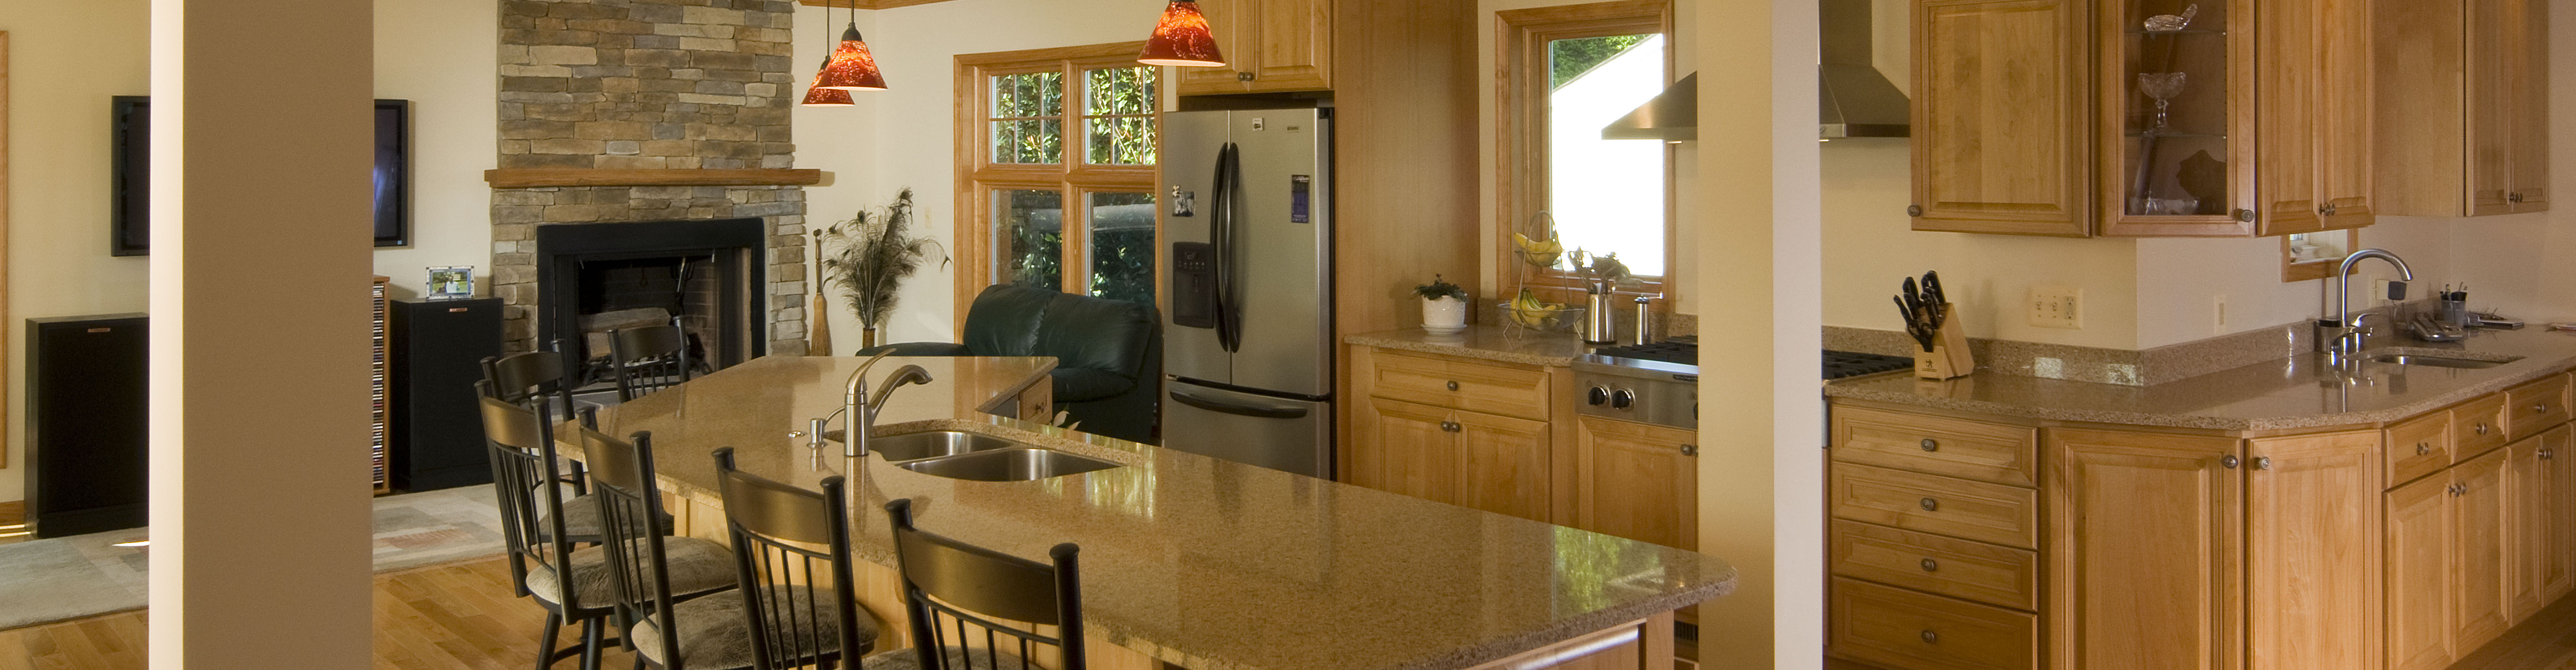 Kitchen & Bathroom Remodeling – Hayes Construction